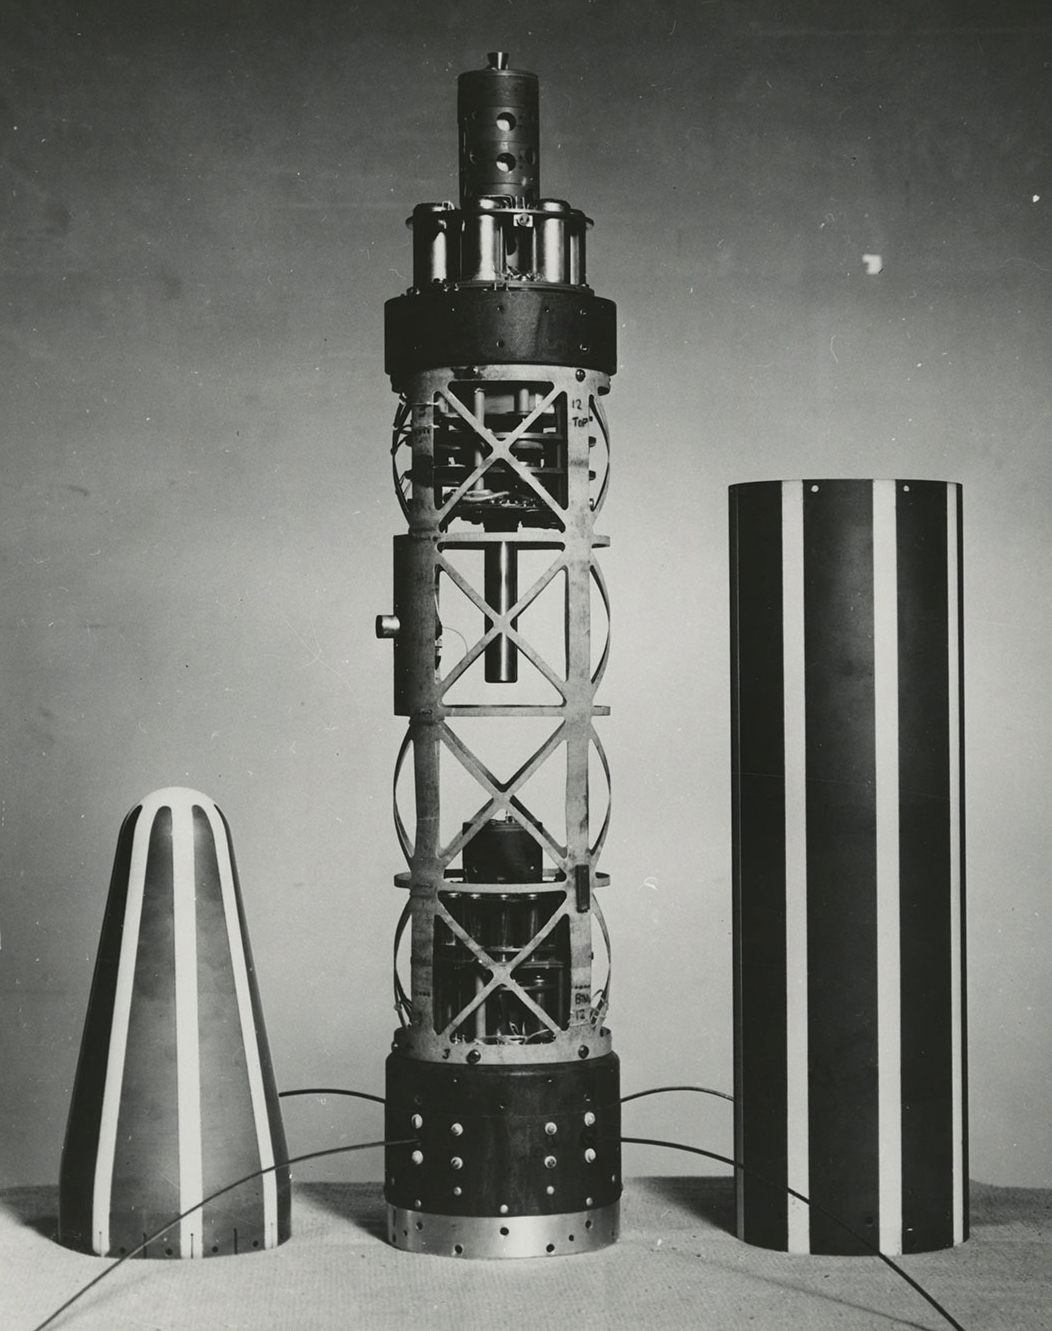 scientific instruments mounted inside Explorer 1